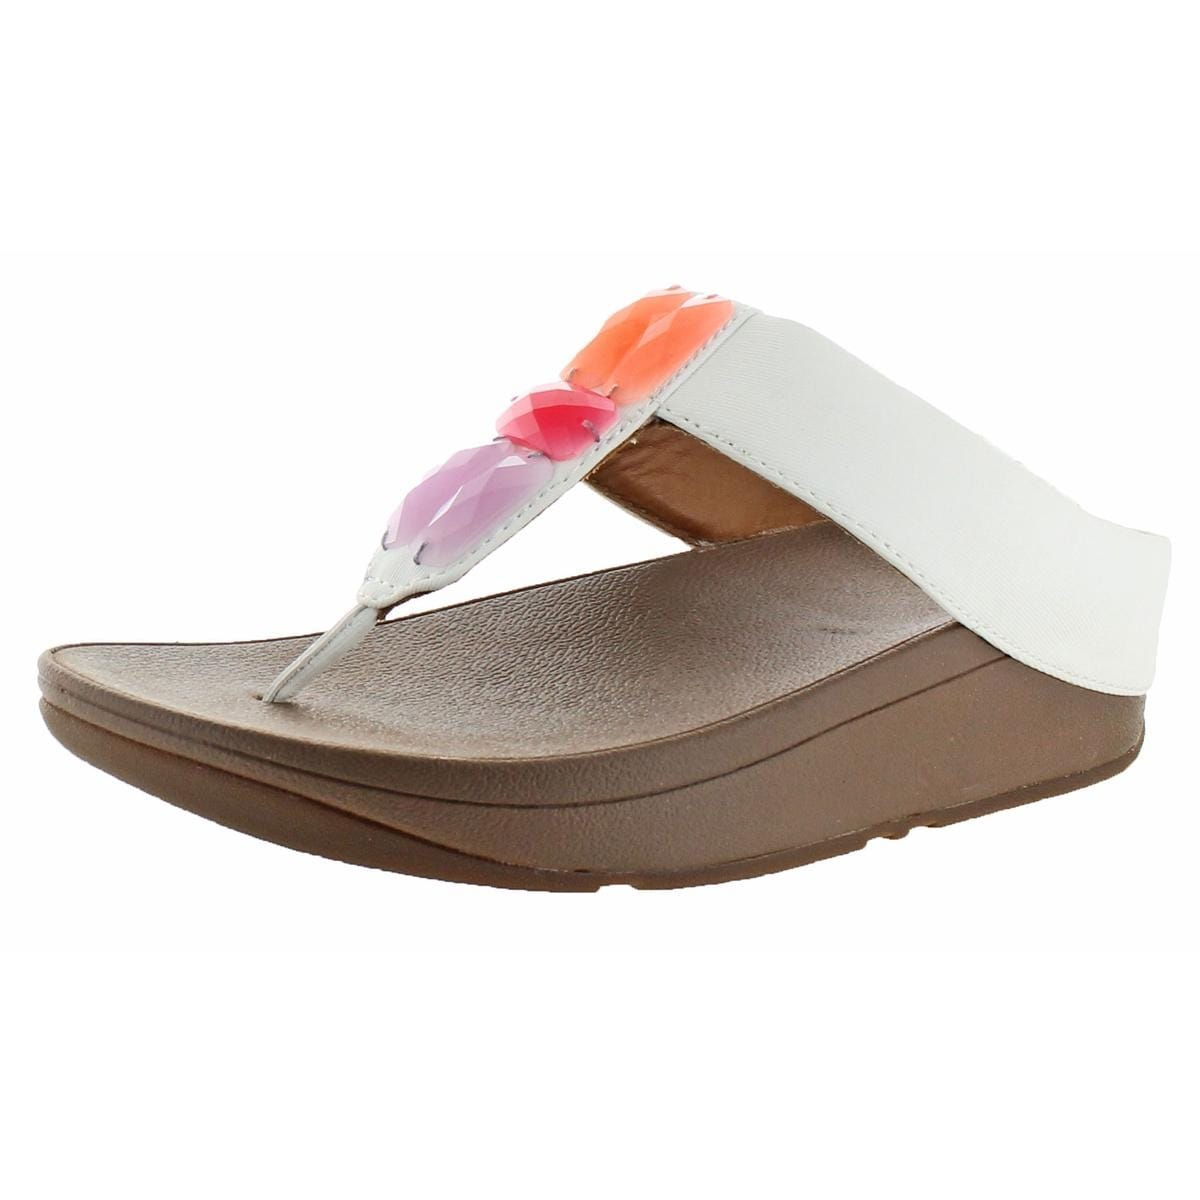 f21b850f5e7ac0 Shop Fitflop Womens Sweetie Thong Sandals Man Made Slip On - On Sale ...